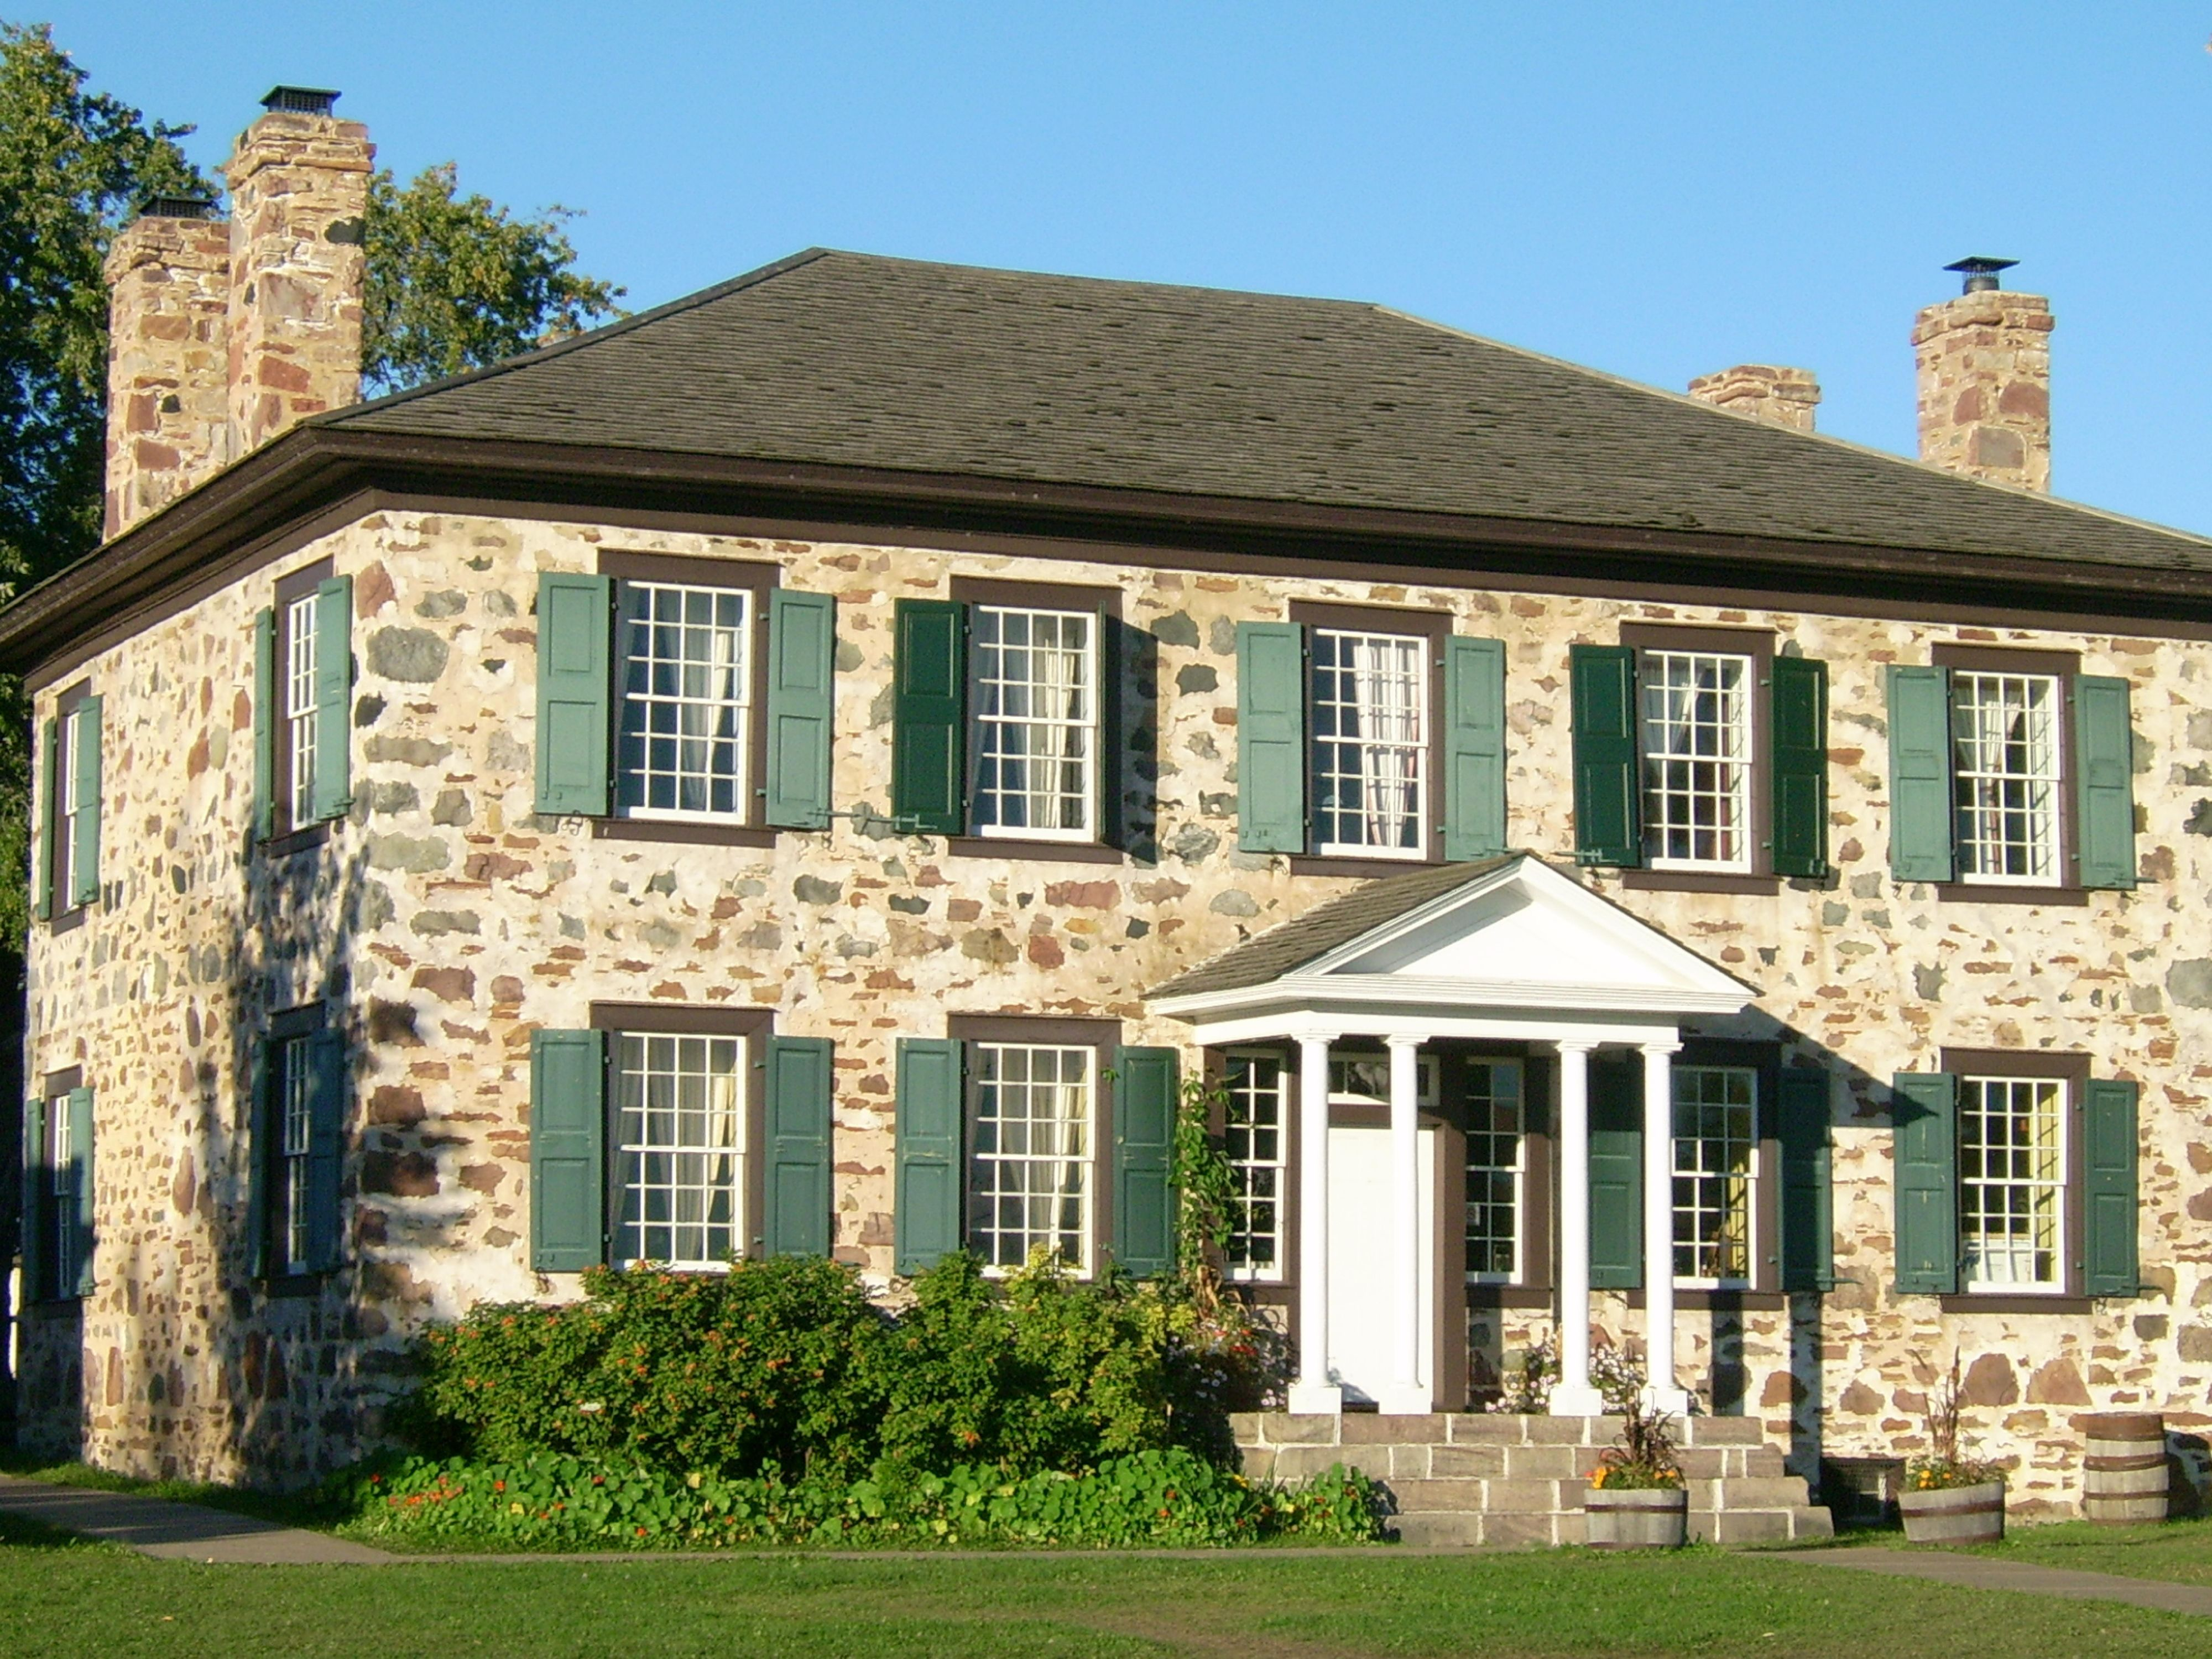 Ermatinger Clergue Historic Site